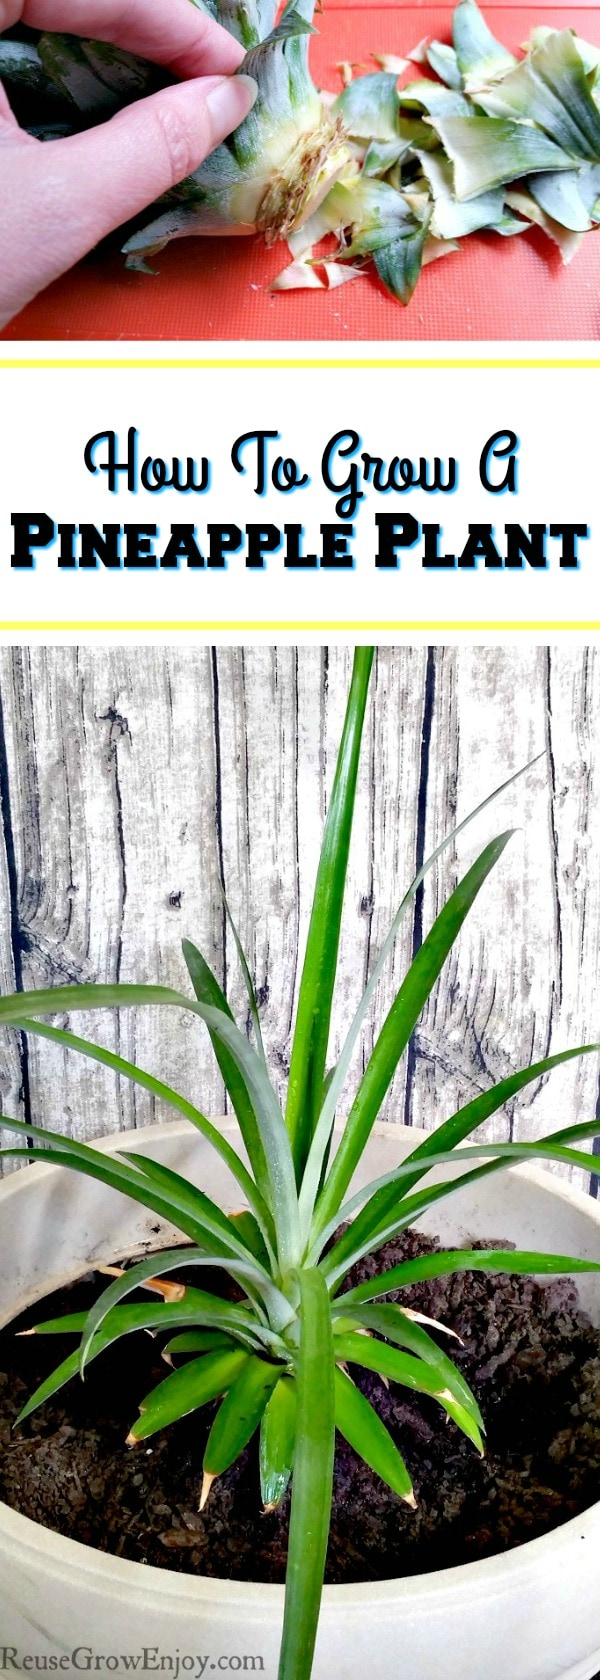 How to grow a pineapple plant reuse grow enjoy for How do i plant a pineapple top